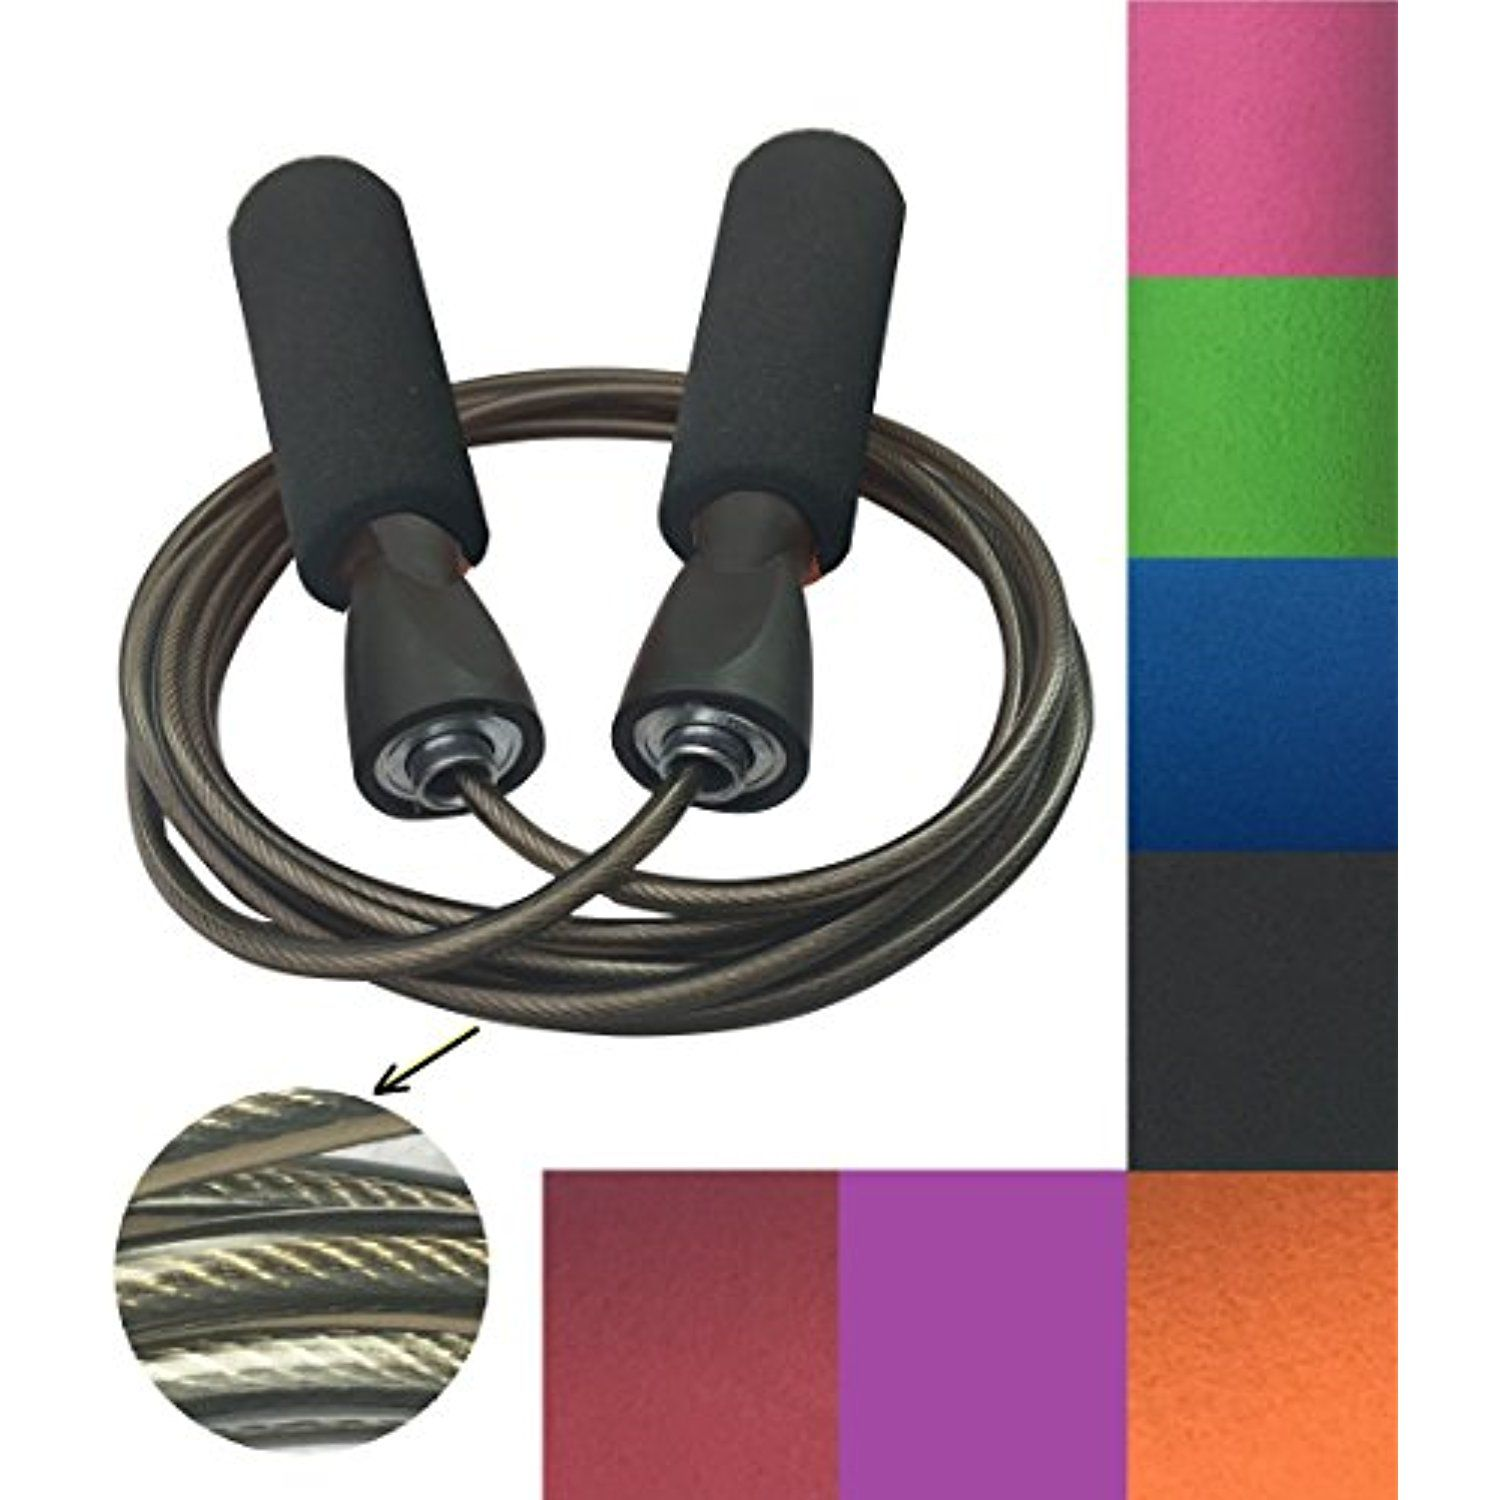 MAXSOINS Professional Adjustable Steel Wire Jump Rope with Carrying Pouch by to